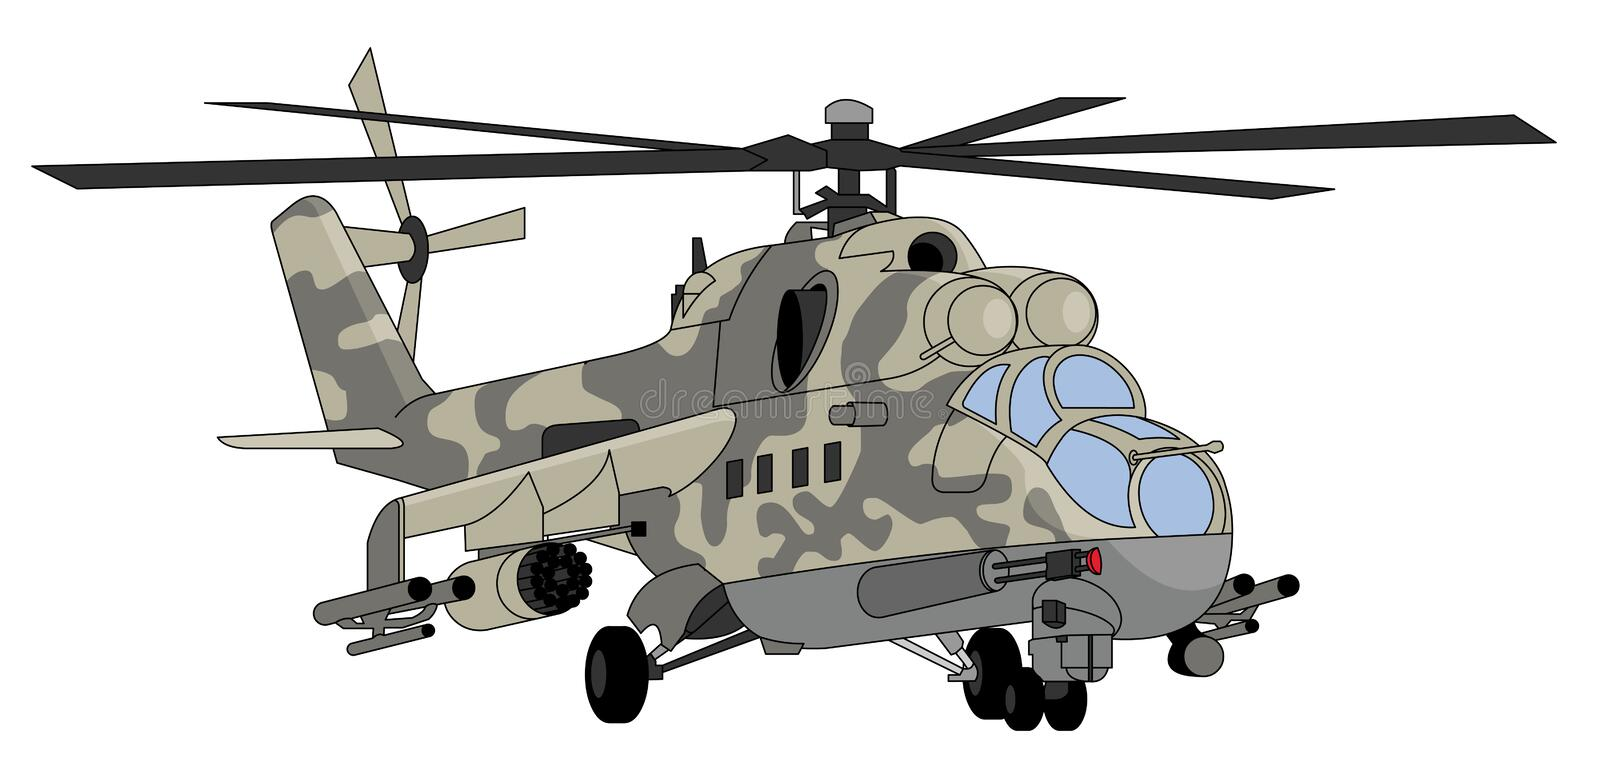 Military helicopter illustration